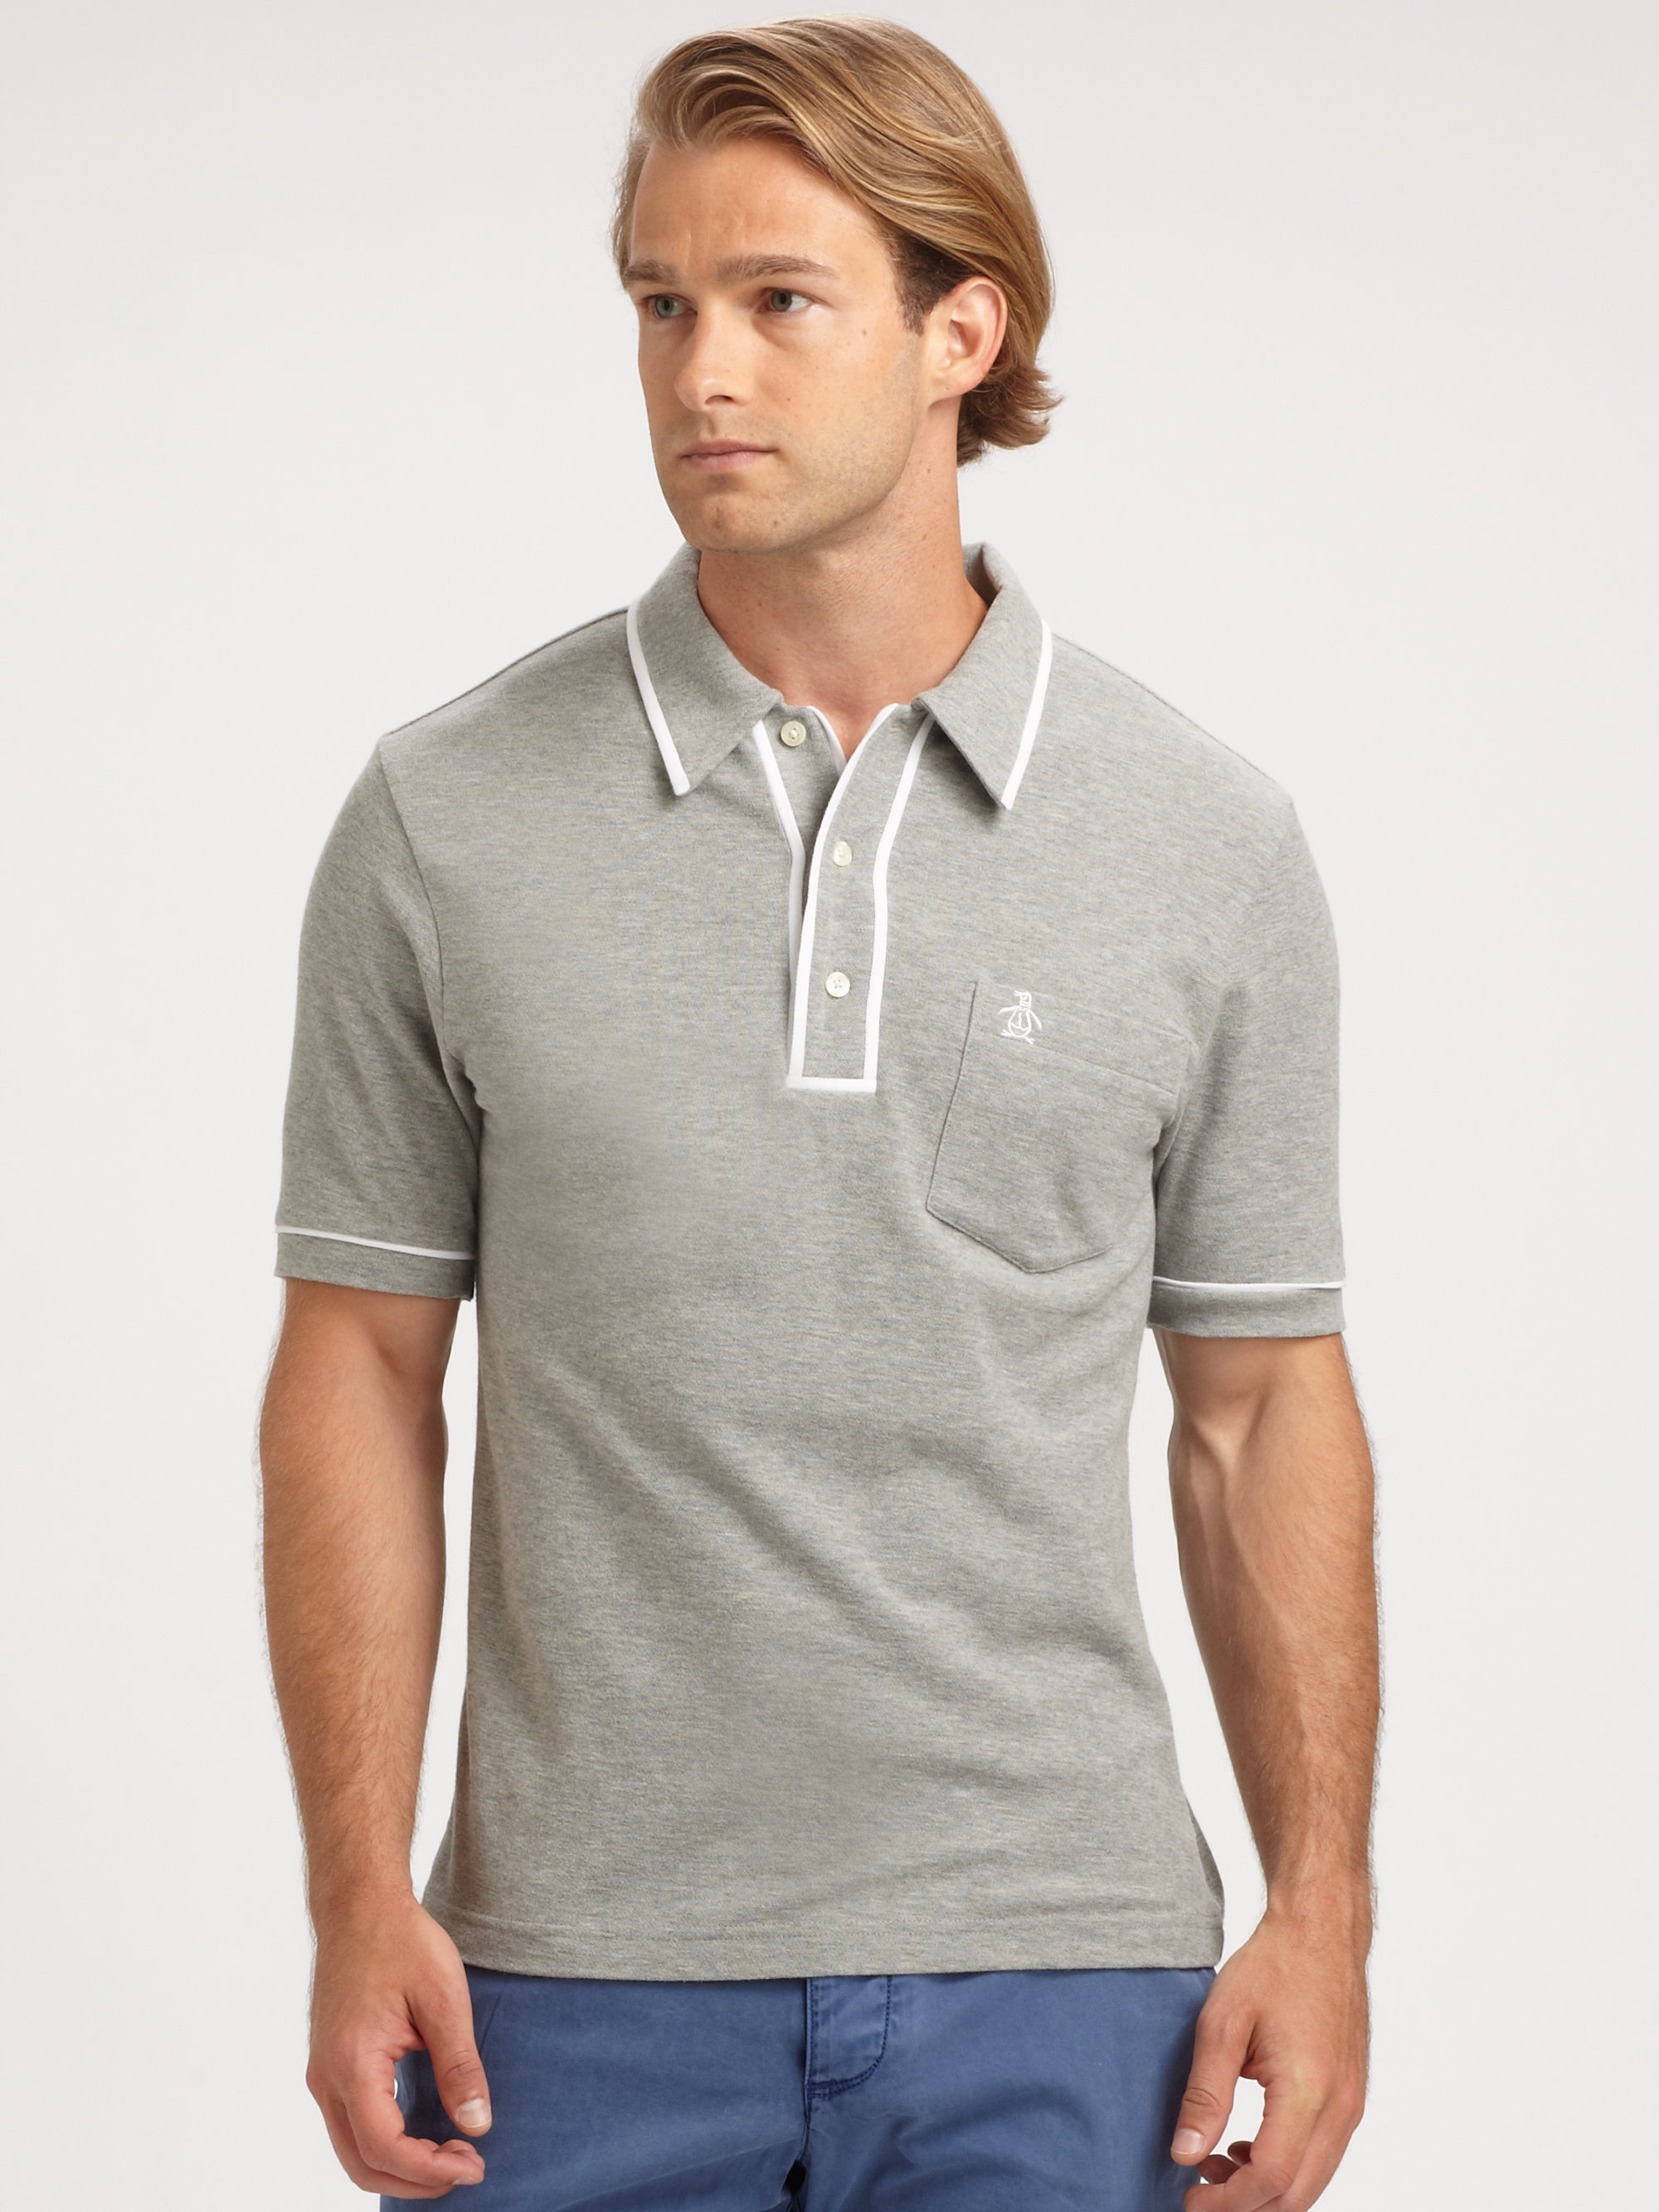 Lyst Original Penguin The Earl Cotton Polo Tee In Gray For Men